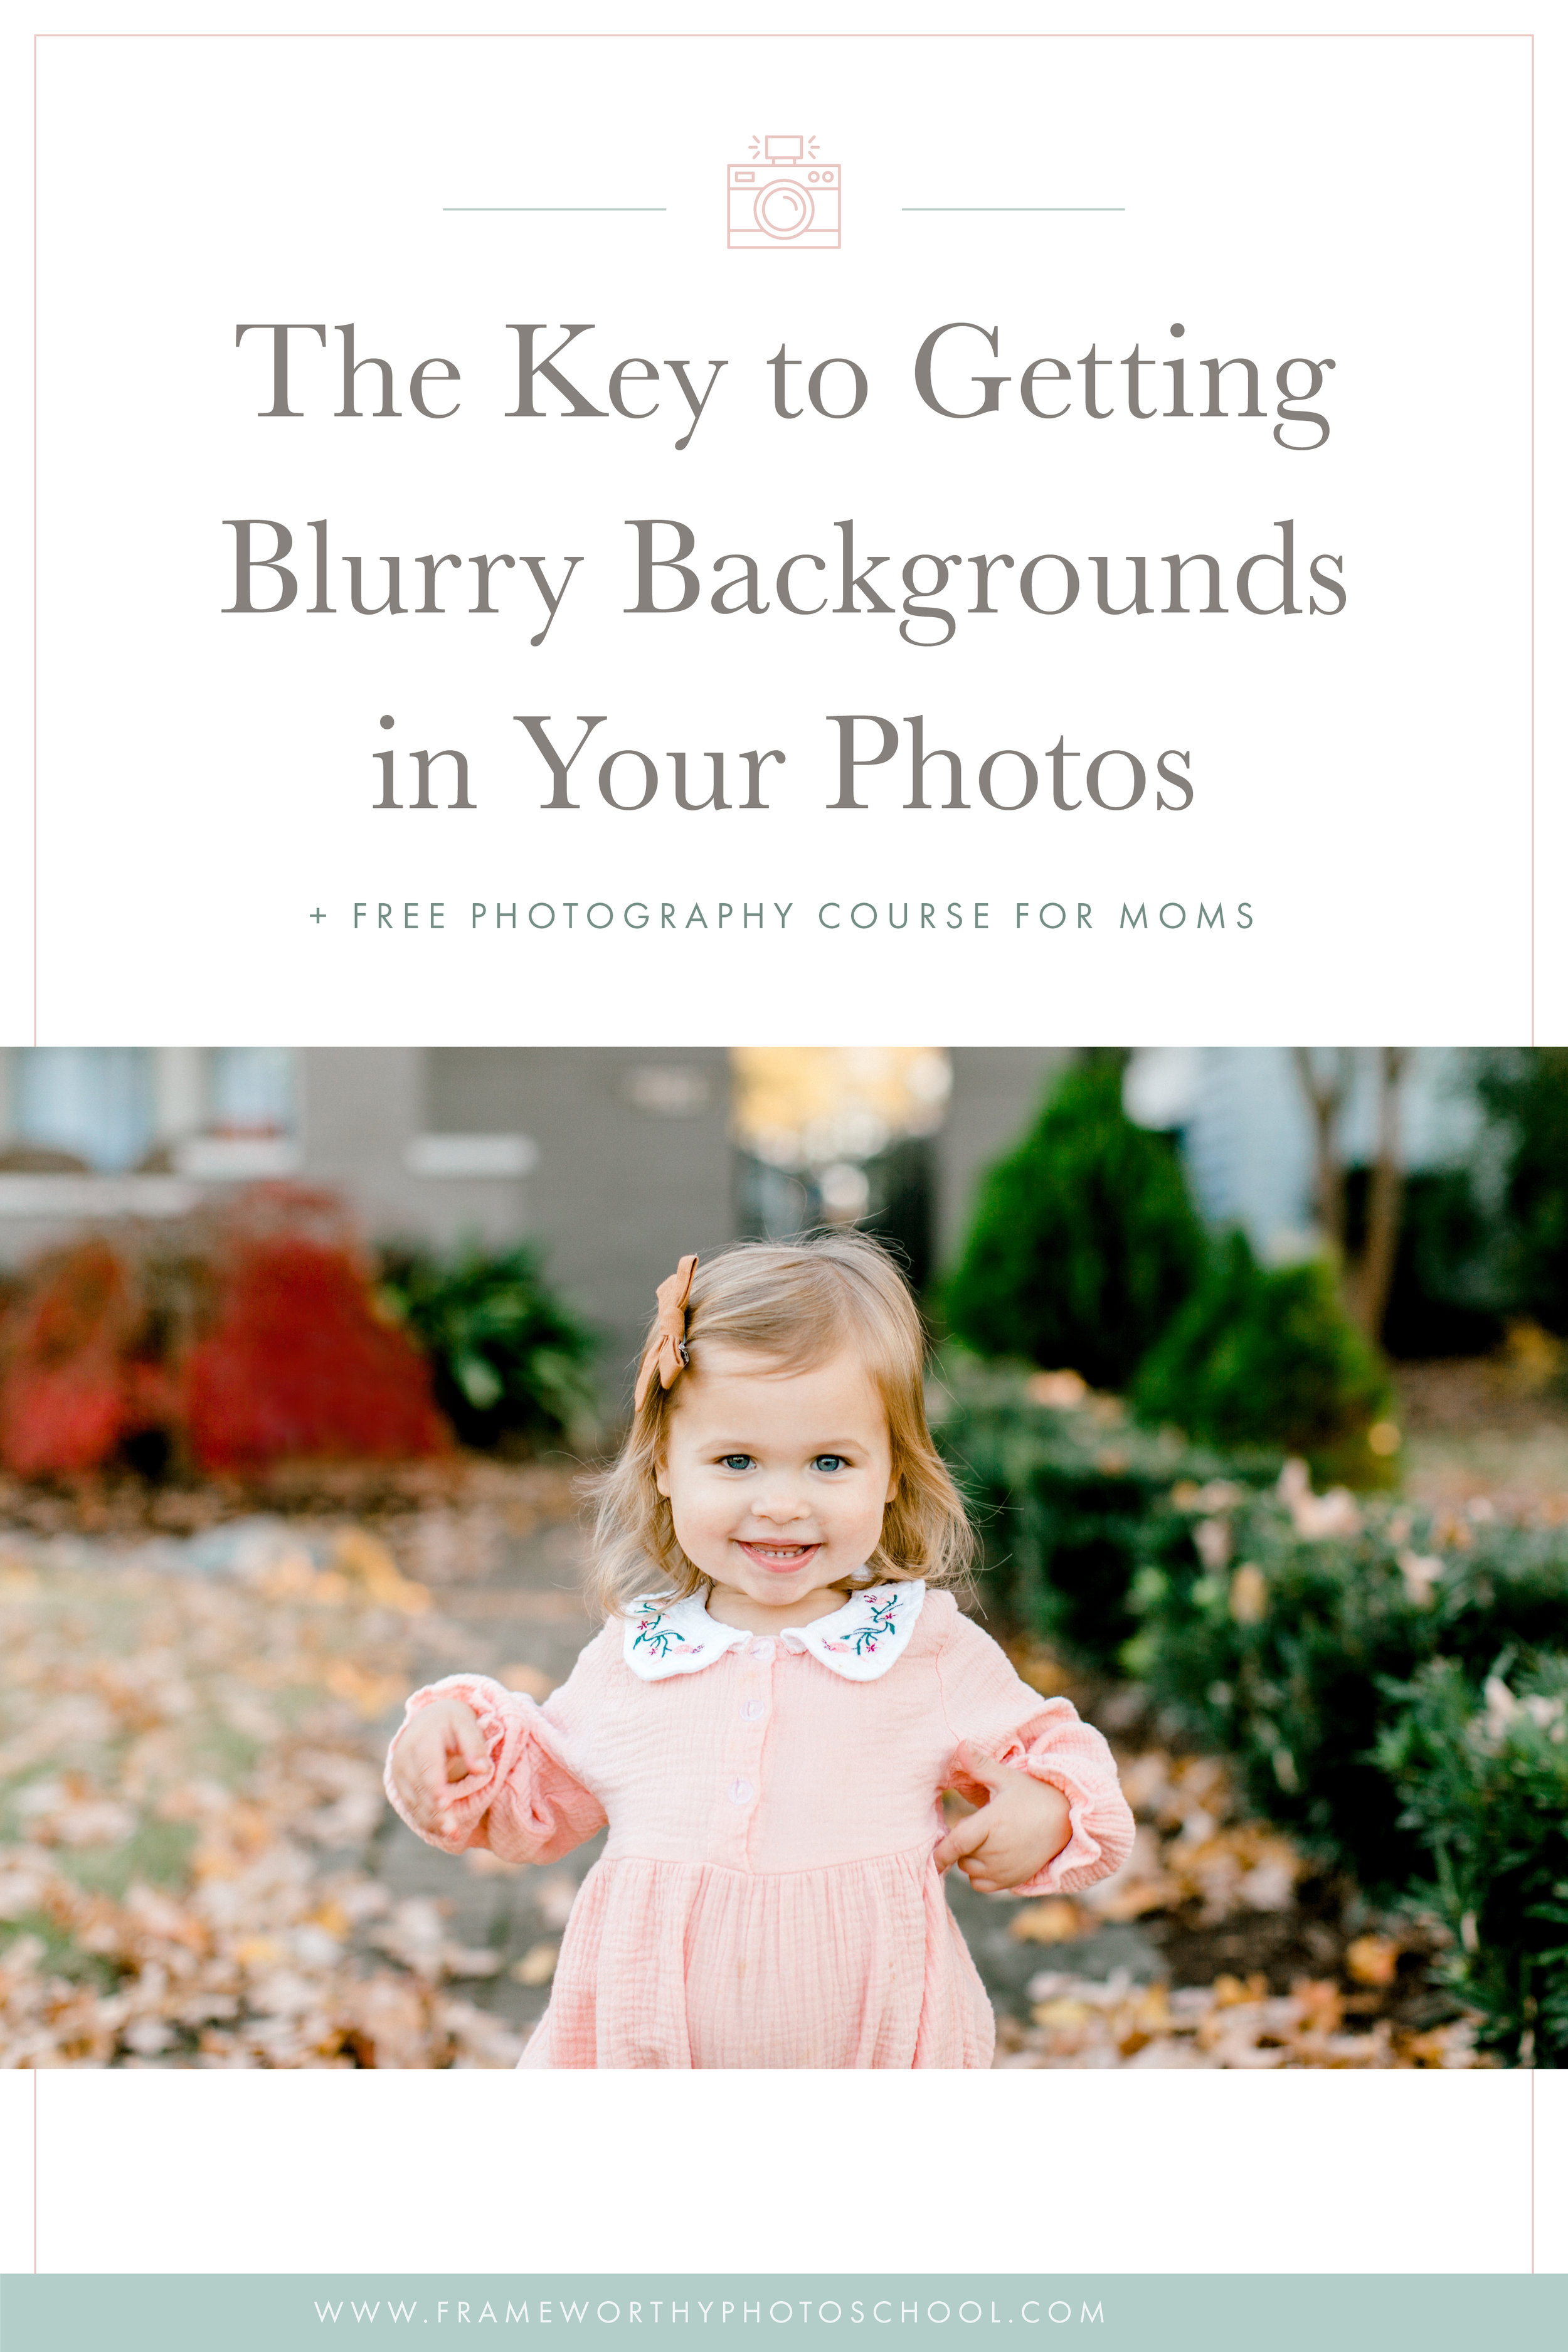 How To Get Blurry Backgrounds In Your Photos